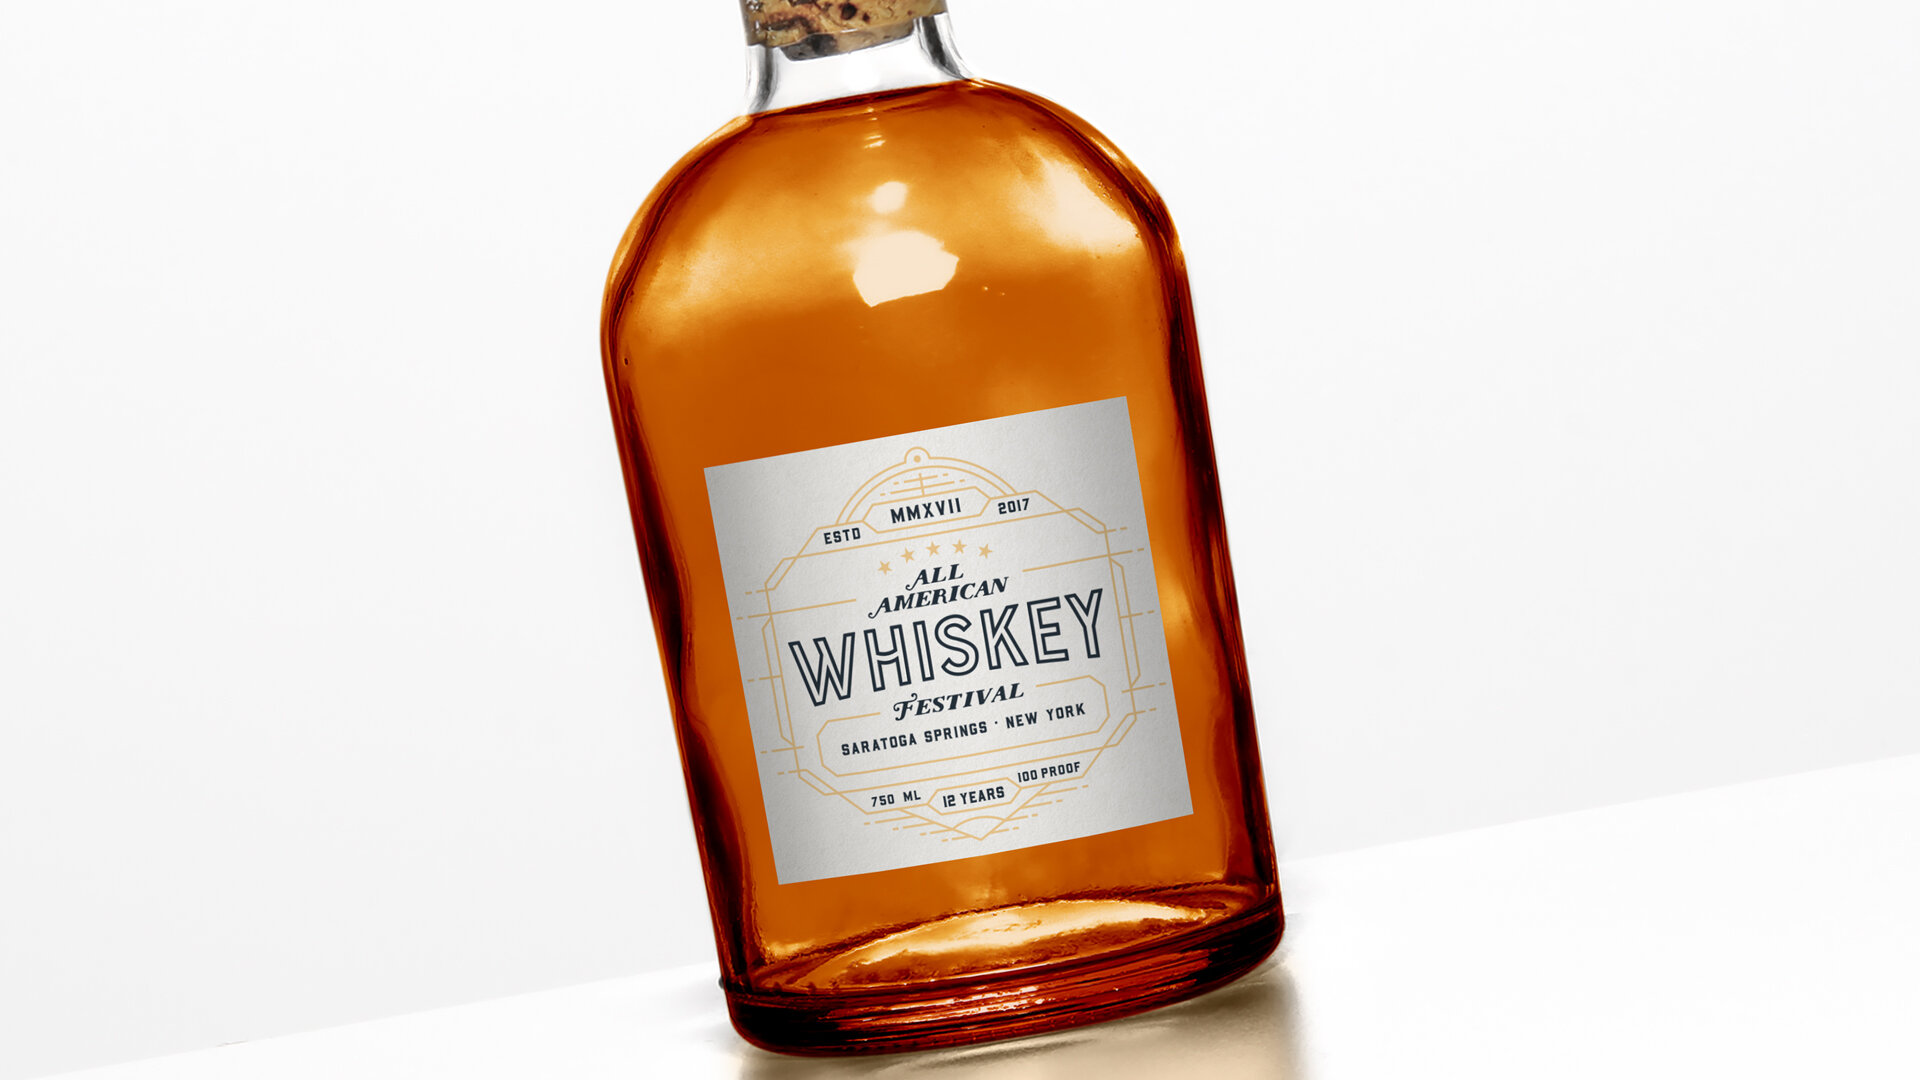 Whiskey-Bottle-MockUp.jpg